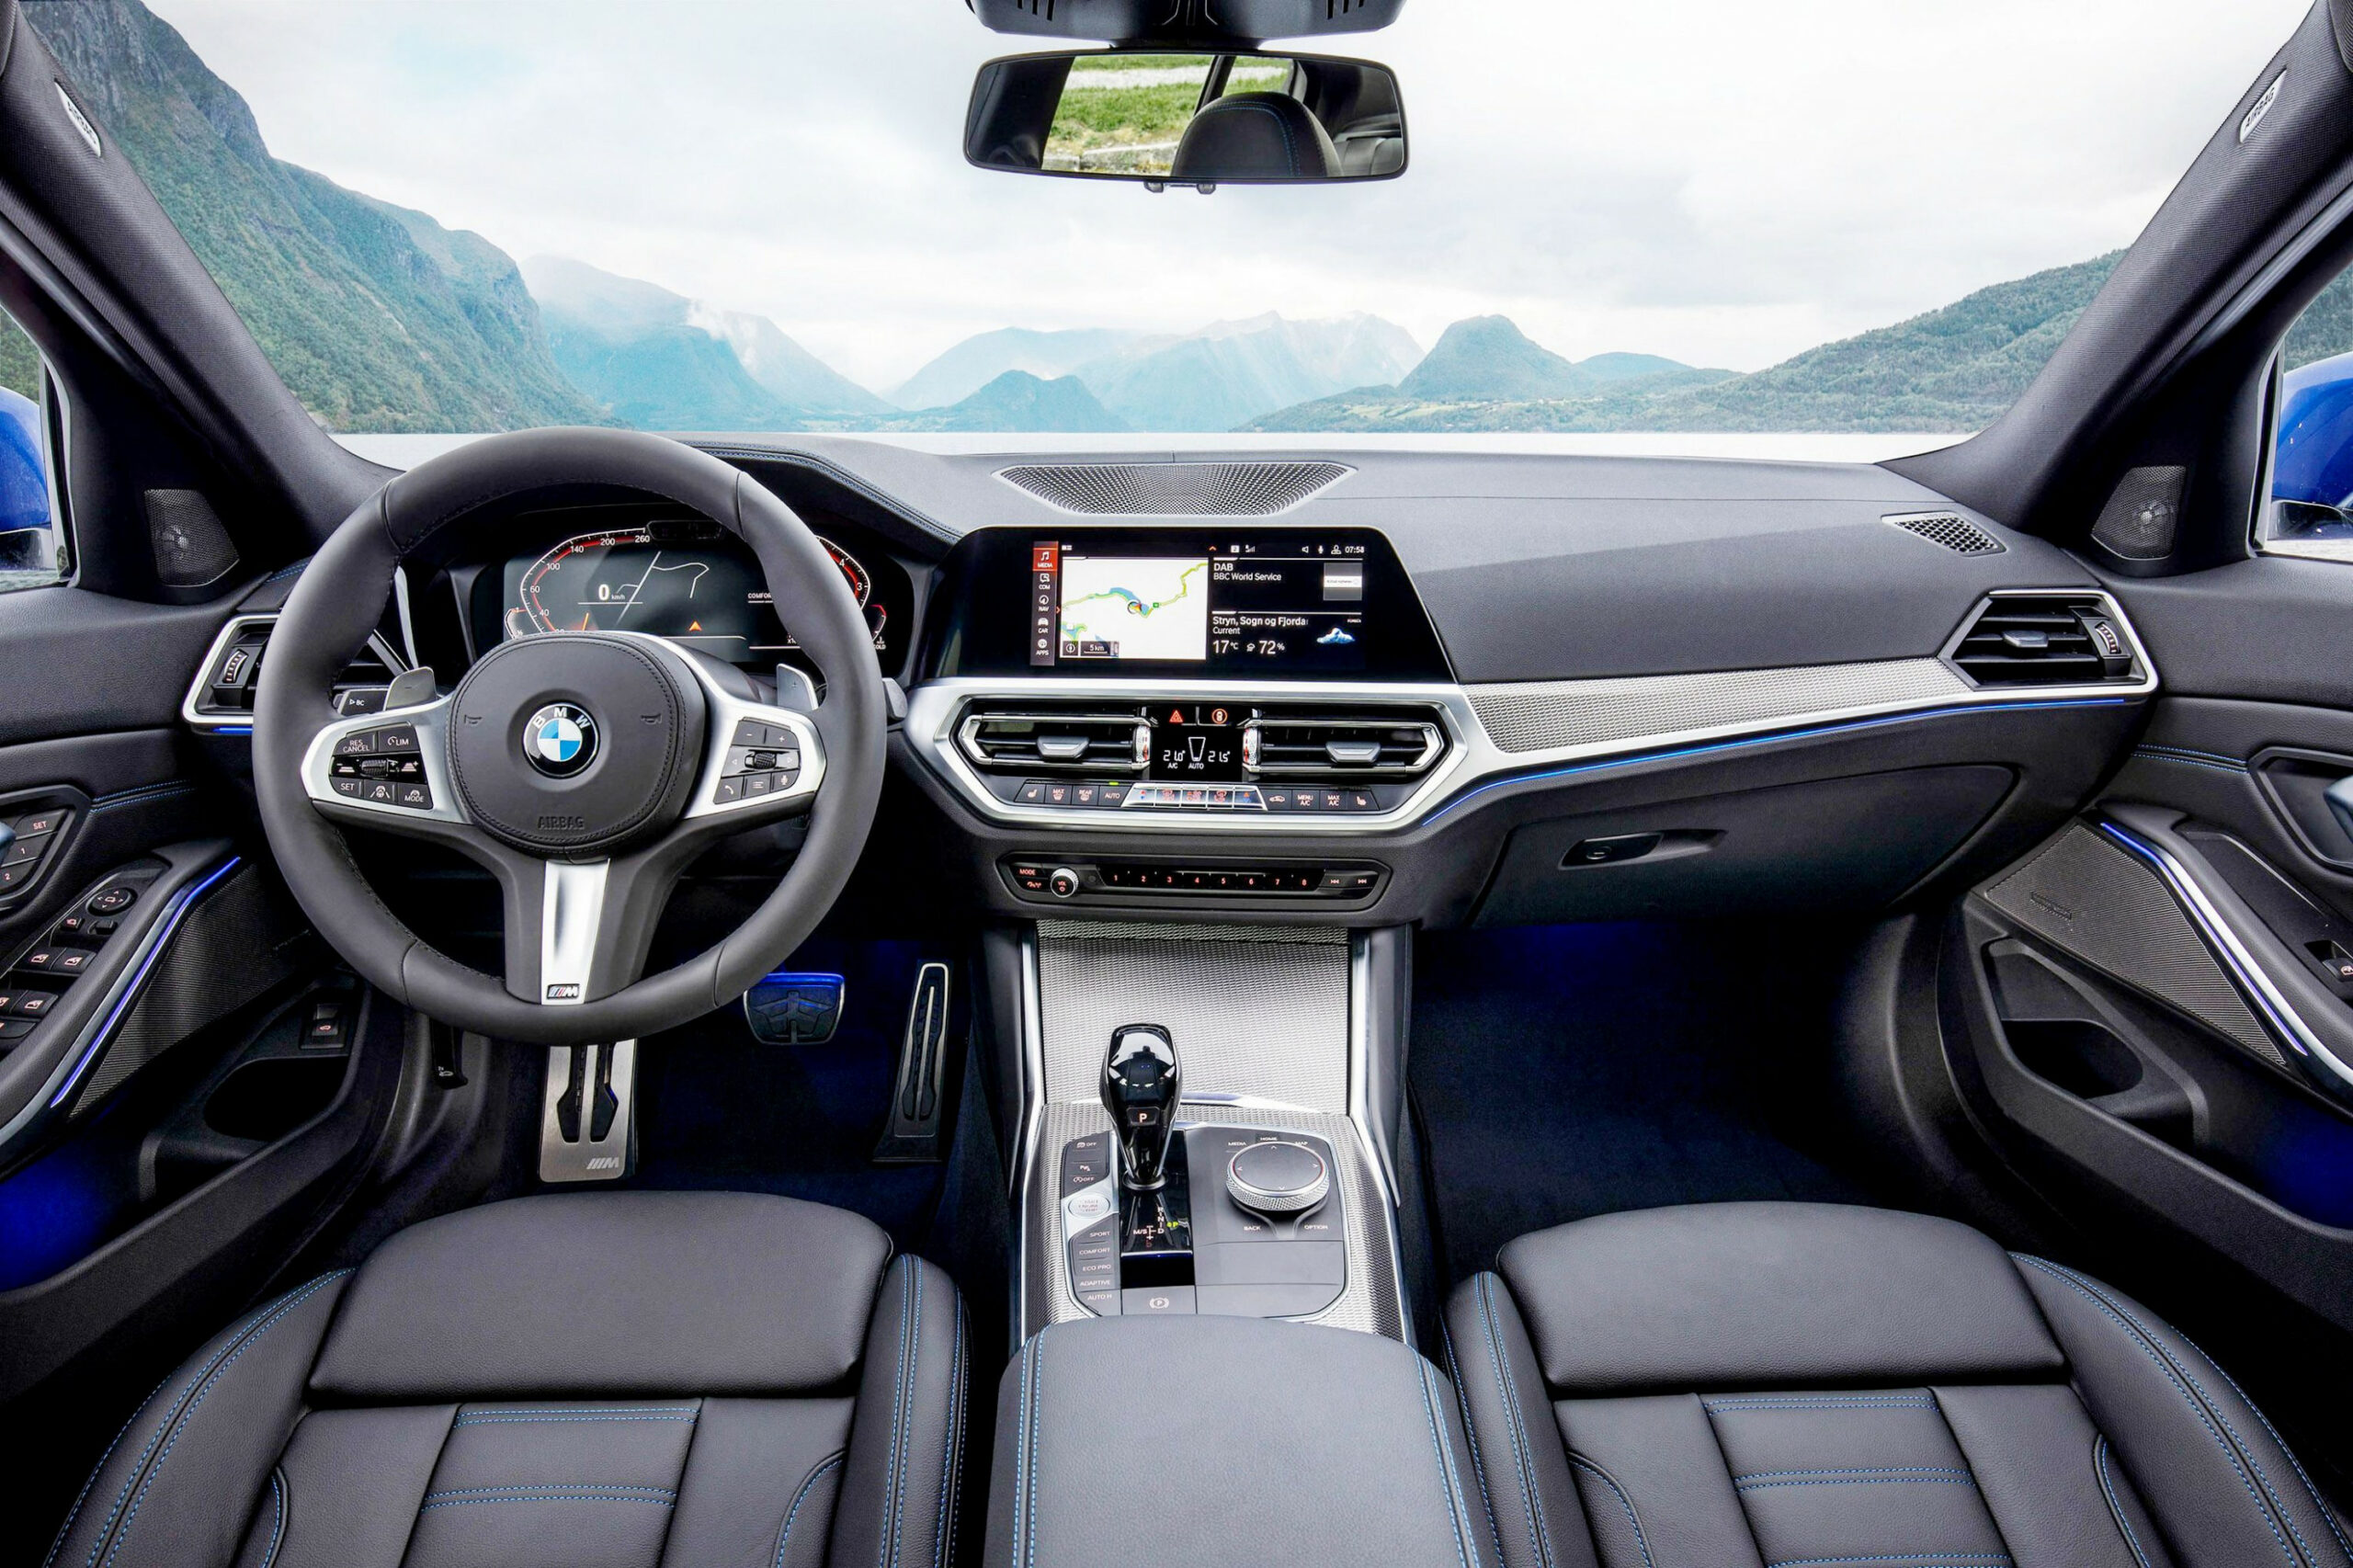 BMW 7 Series 7 775i in Qatar: New Car Prices, Specs, Reviews ...